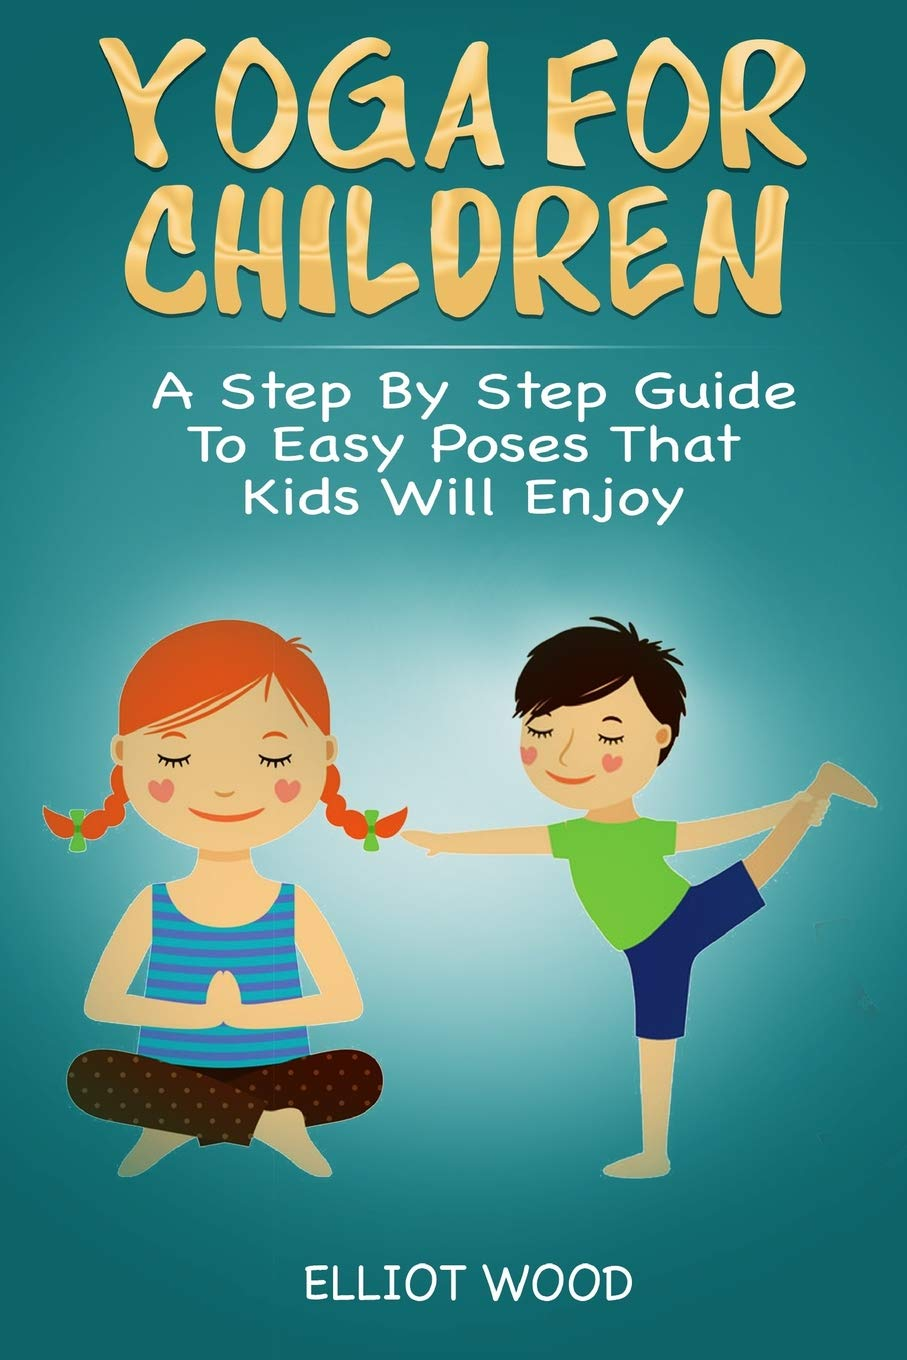 Yoga for children - A Step By Step Guide To Easy Poses That ...